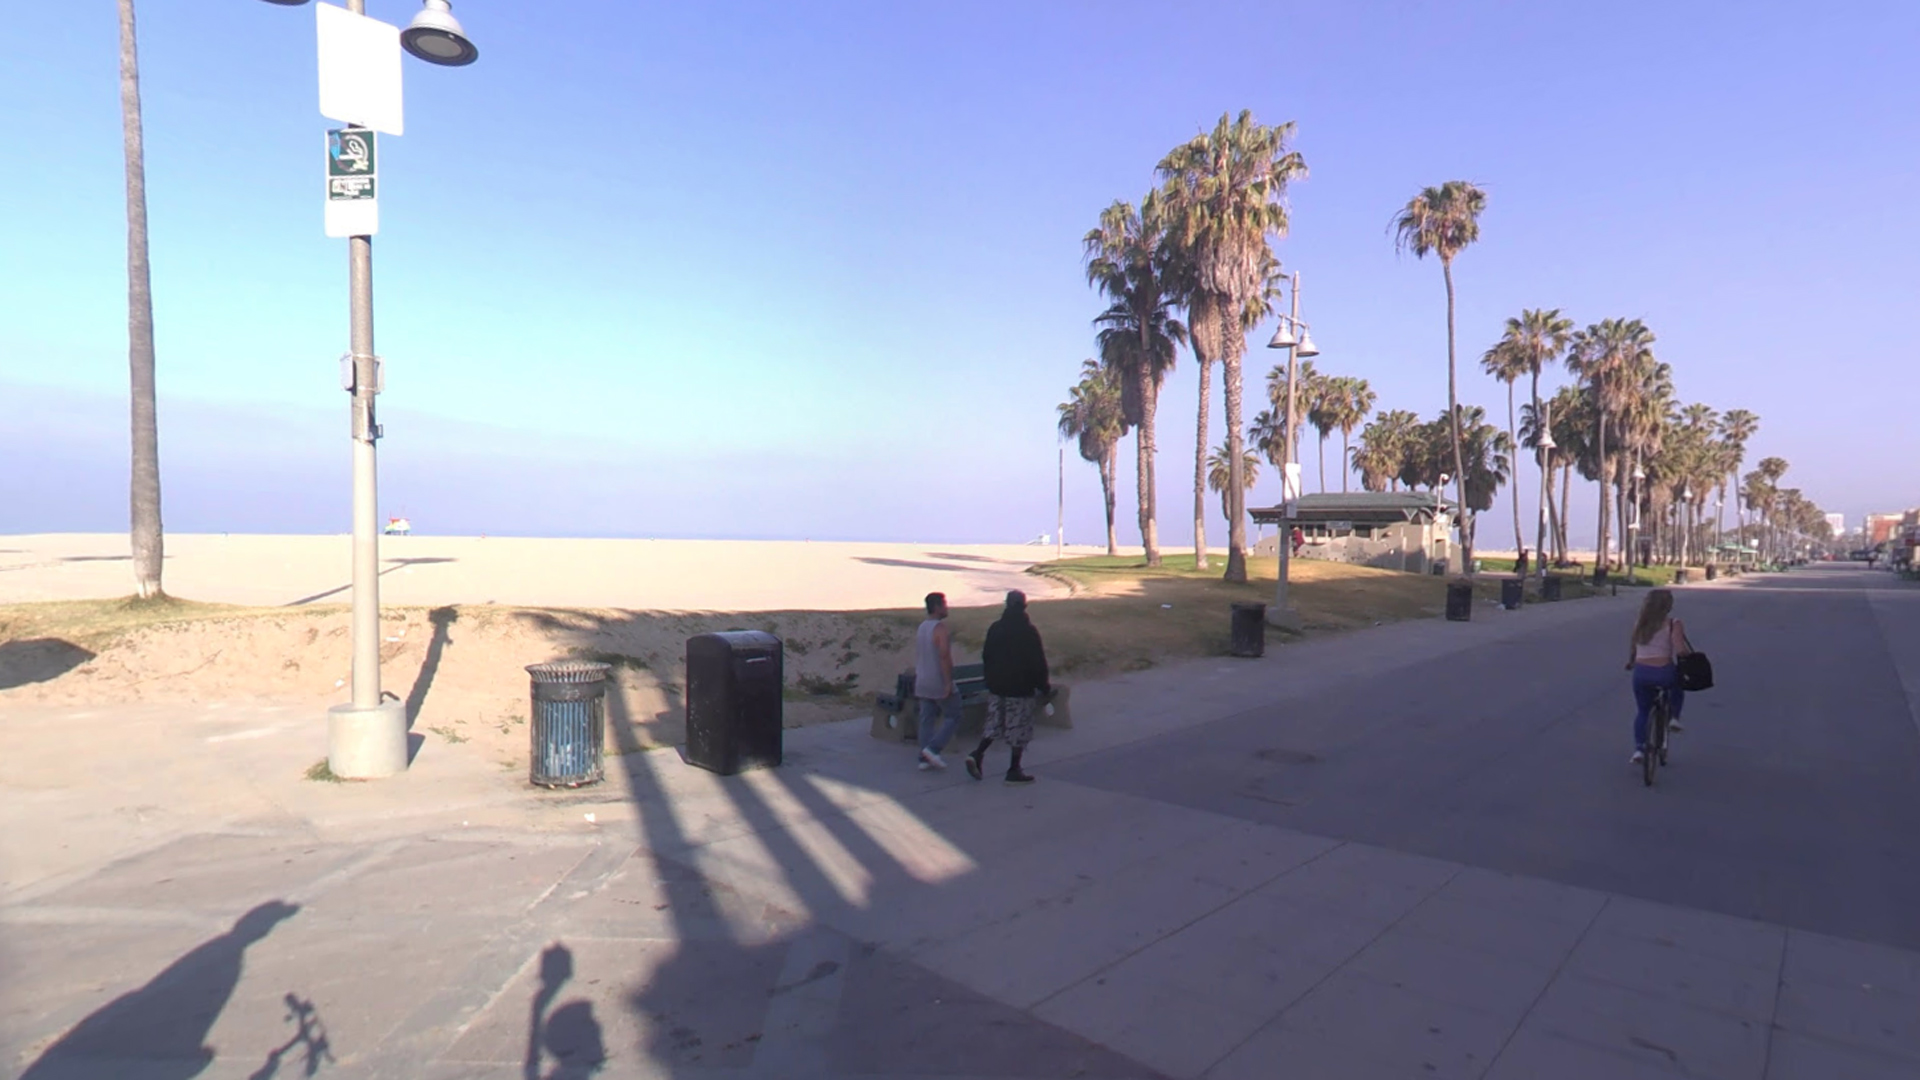 Venice Beach, as seen in a Google Street View image in June of 2008.